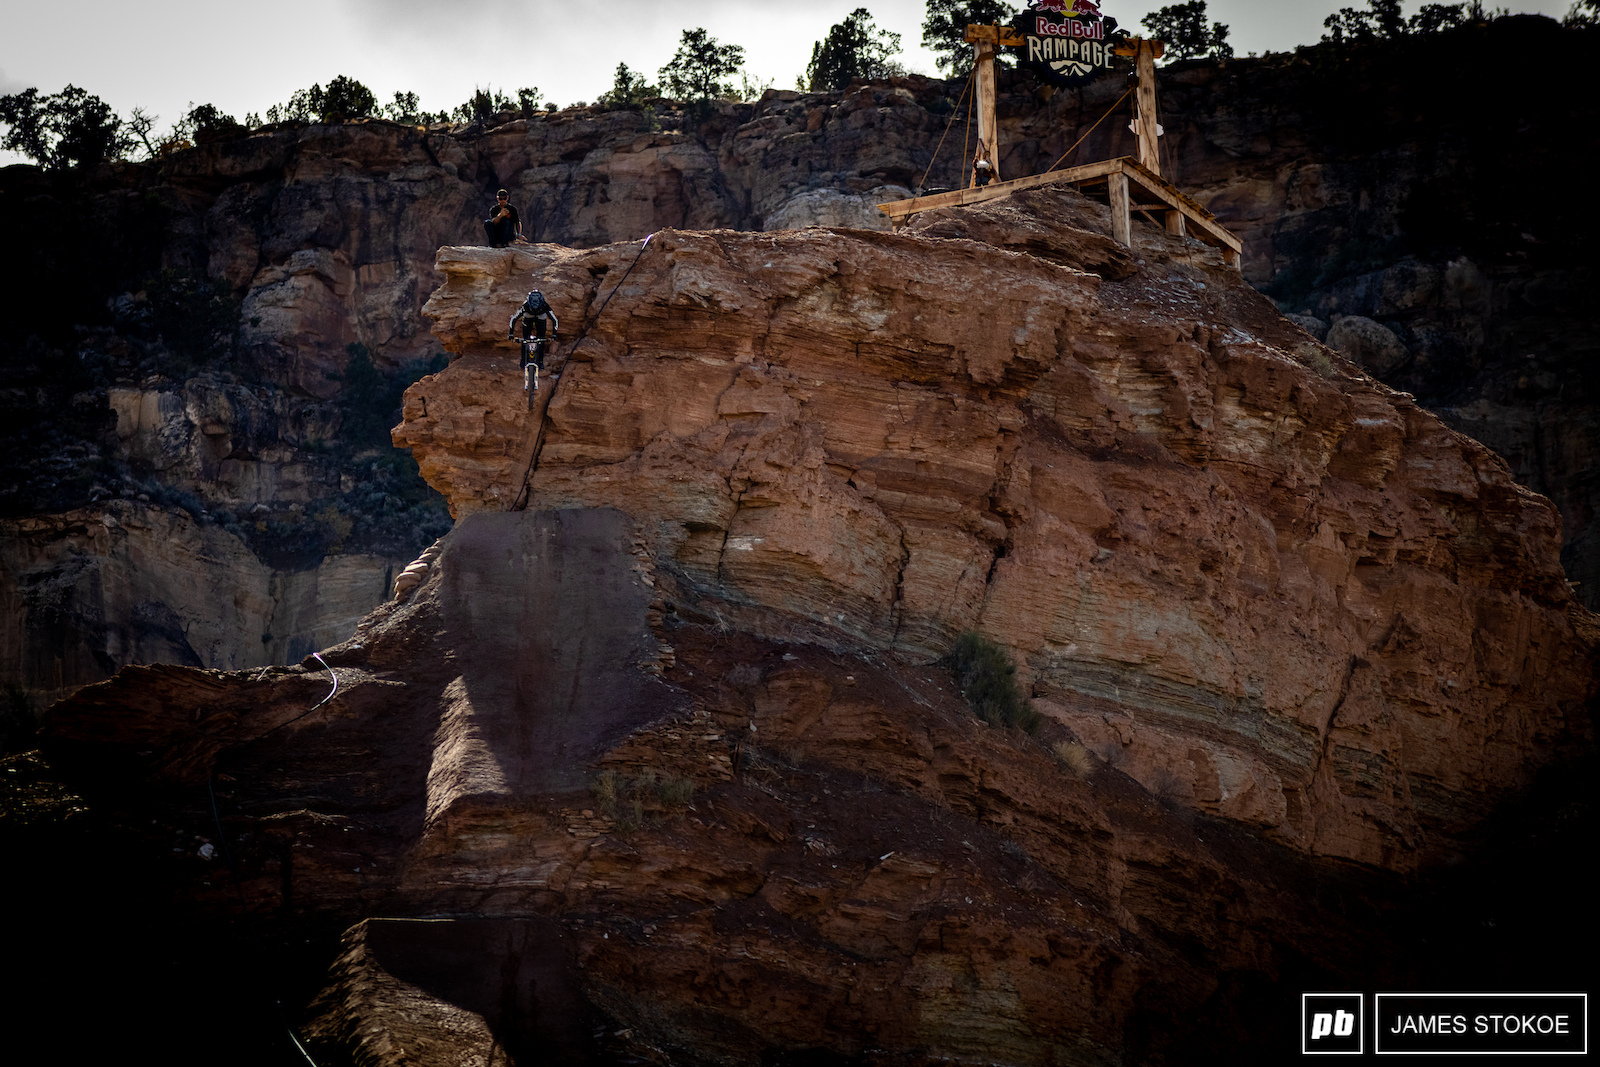 Tyler McCaul piecing together his line from the very top.